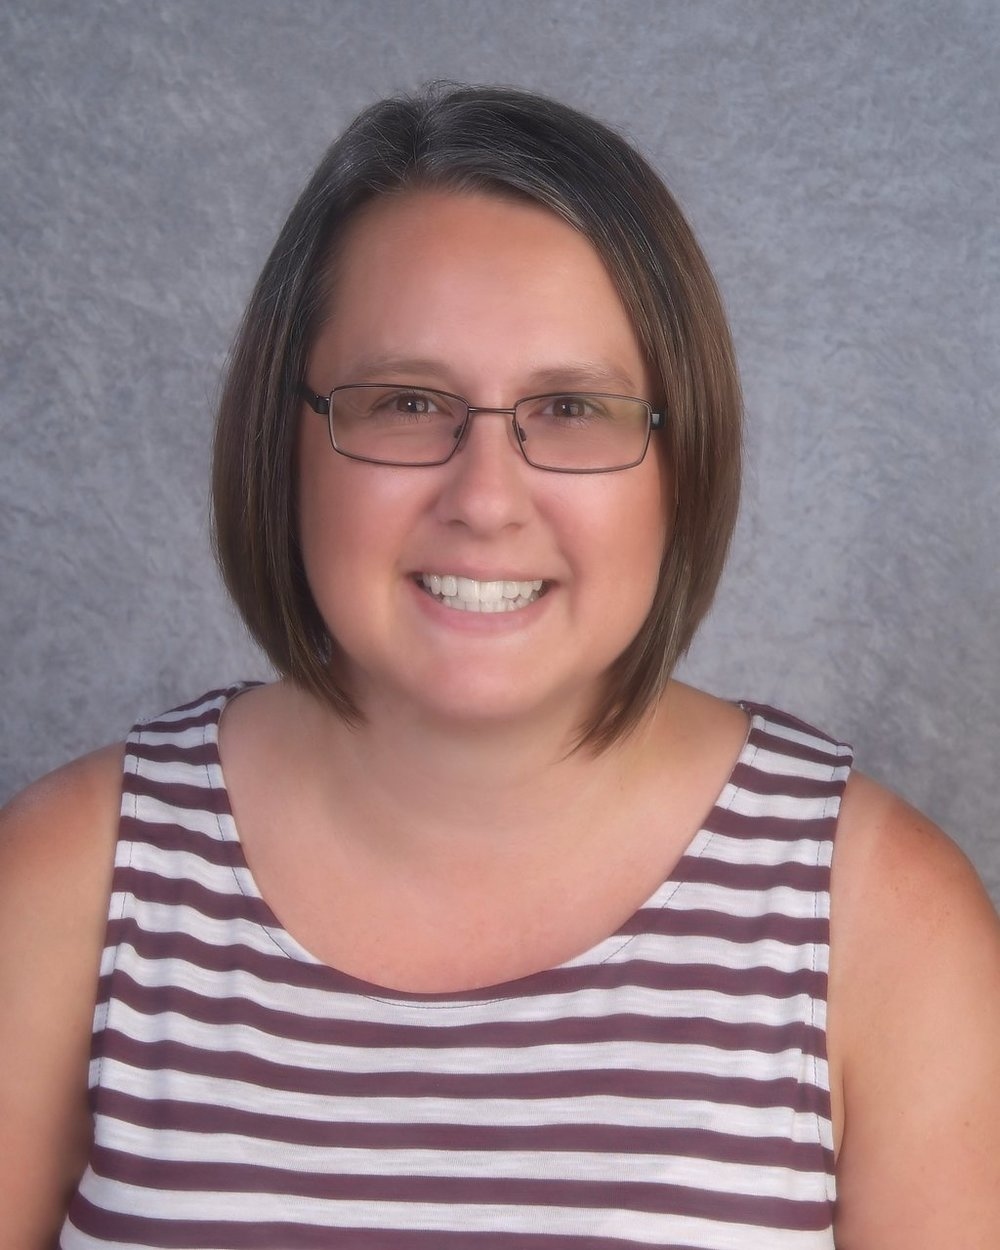 June - Heather VolkersHeather serves in an official capacity on Step By Step's Housing Board, but she has been generously volunteering her time and expertise for over 10 years. She is a lead committee member and heads up the registration and checkout team for our annual fundraising dinner and auction. She has volunteered at our Mother's Day events and at our annual 5k Walk/Run as both a volunteer and a Team Captain for the awesome Stepping Stars team. She leads and trains volunteers, assists with countless admin projects, and she recently helped organize and run our Summer Family Picnic and Free Yard Sale for our moms. She is always jumping in to help, and we literally do not know what we would do without her. Heather, you are amazing!